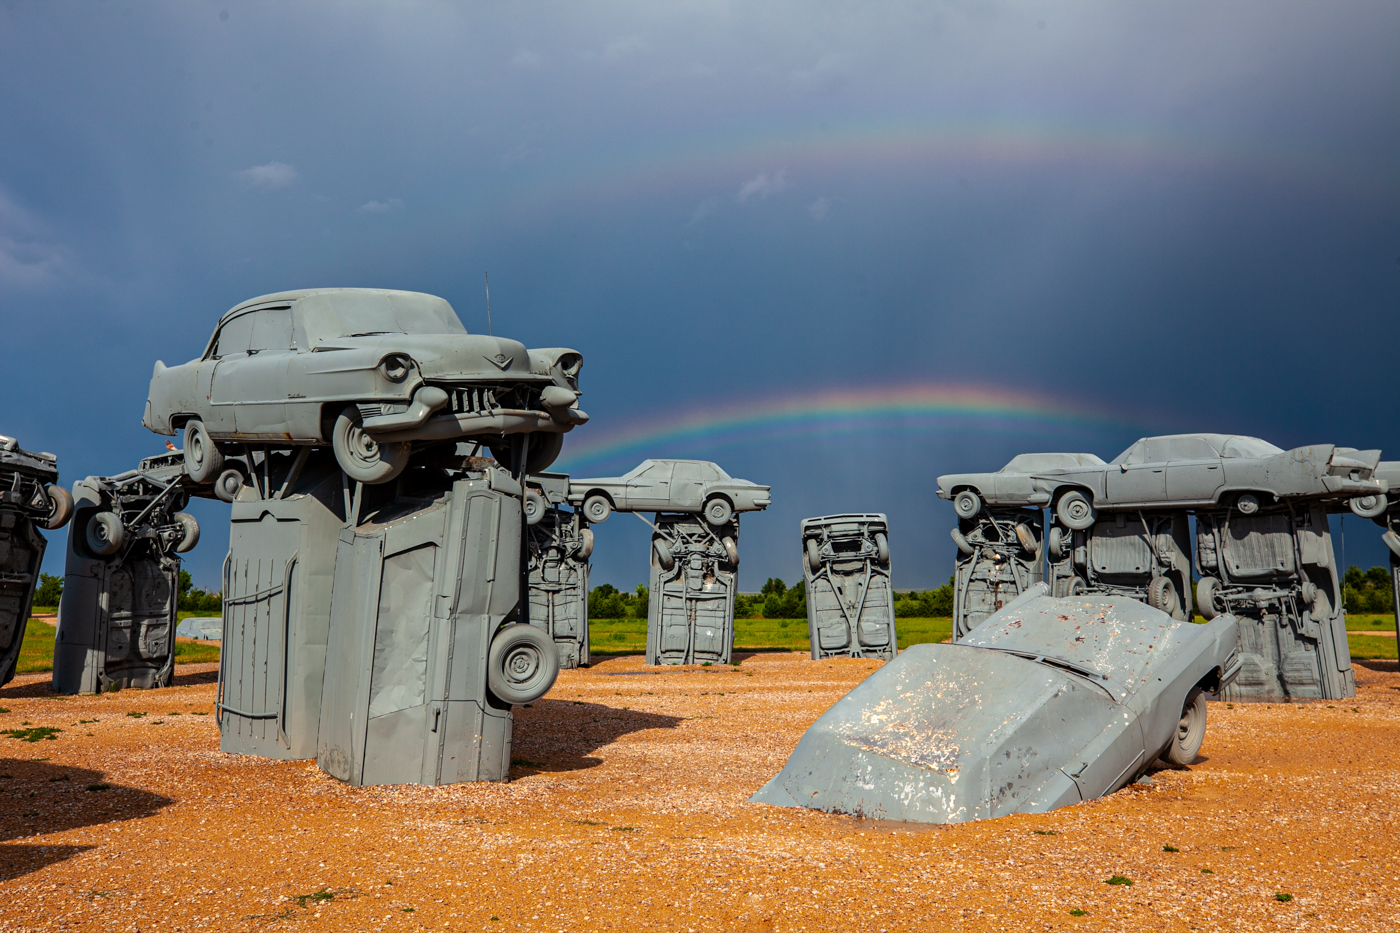 Carhenge in Alliance Nebraska - Roadside Attraction Stonehenge Made From Cars